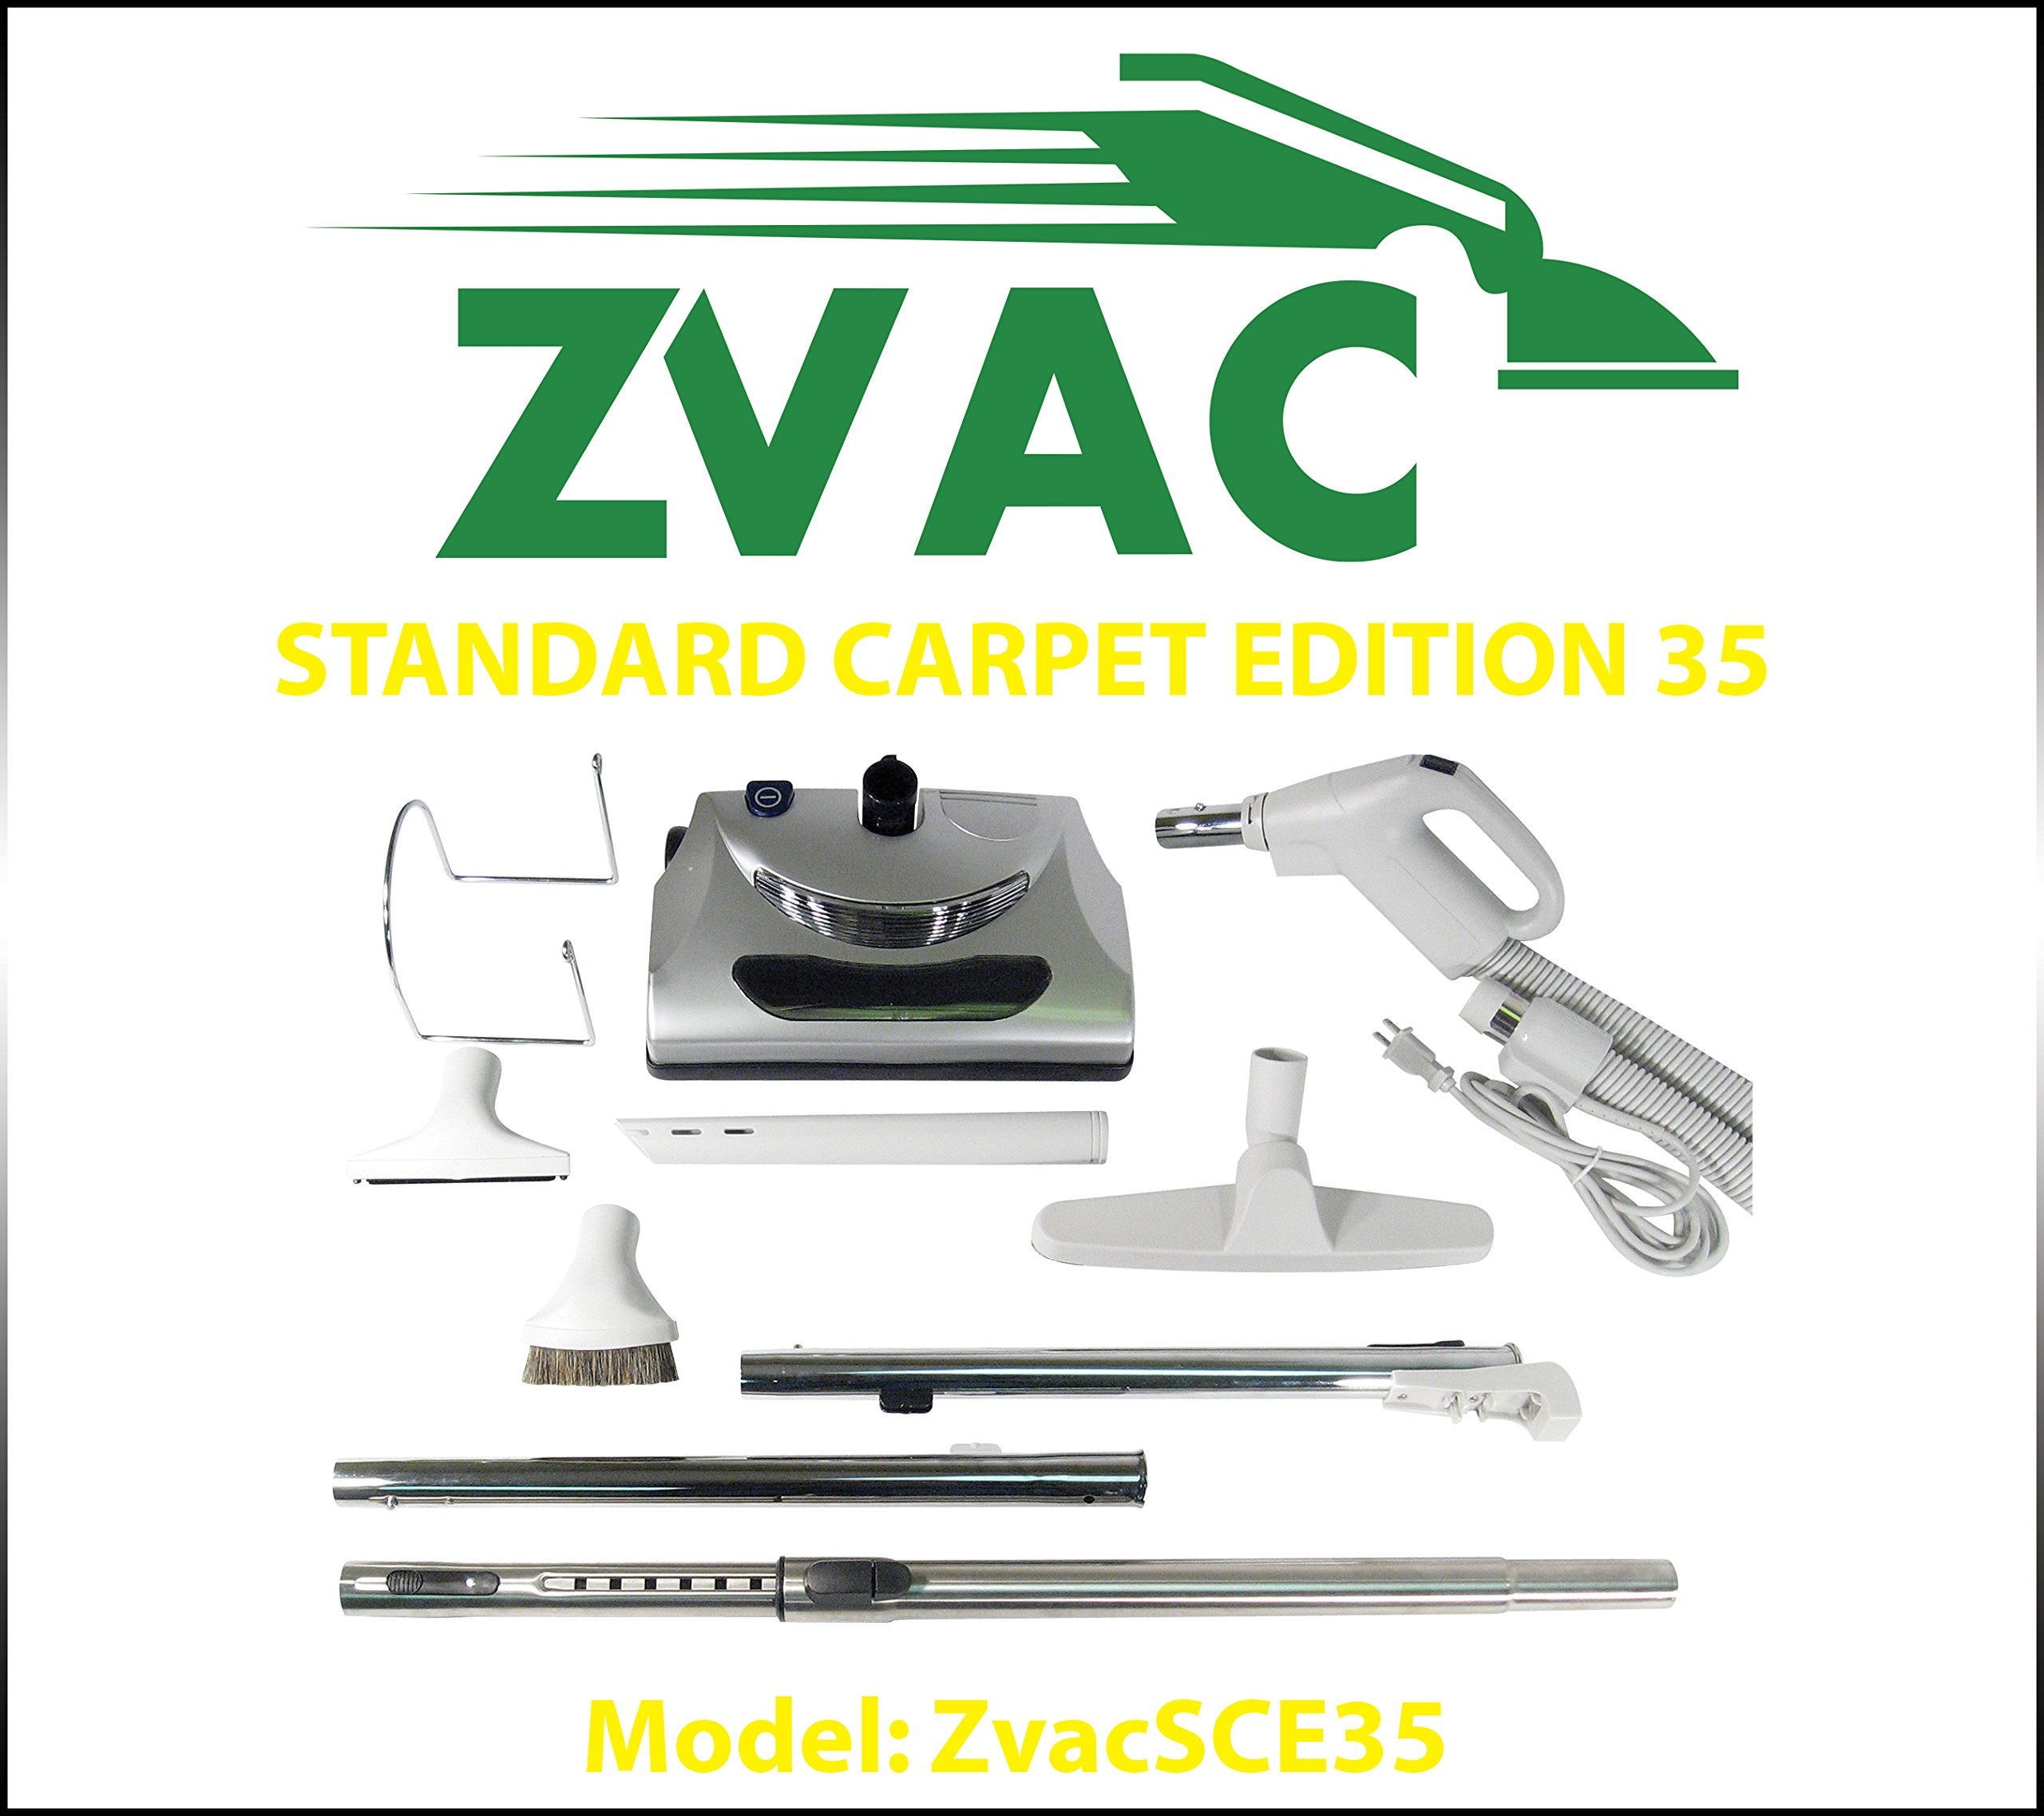 ZVac Standard Carpet Edition 35 - Central vacuum attachment kit for homes with carpets and hardwood floor. Model: ZVacSCE35